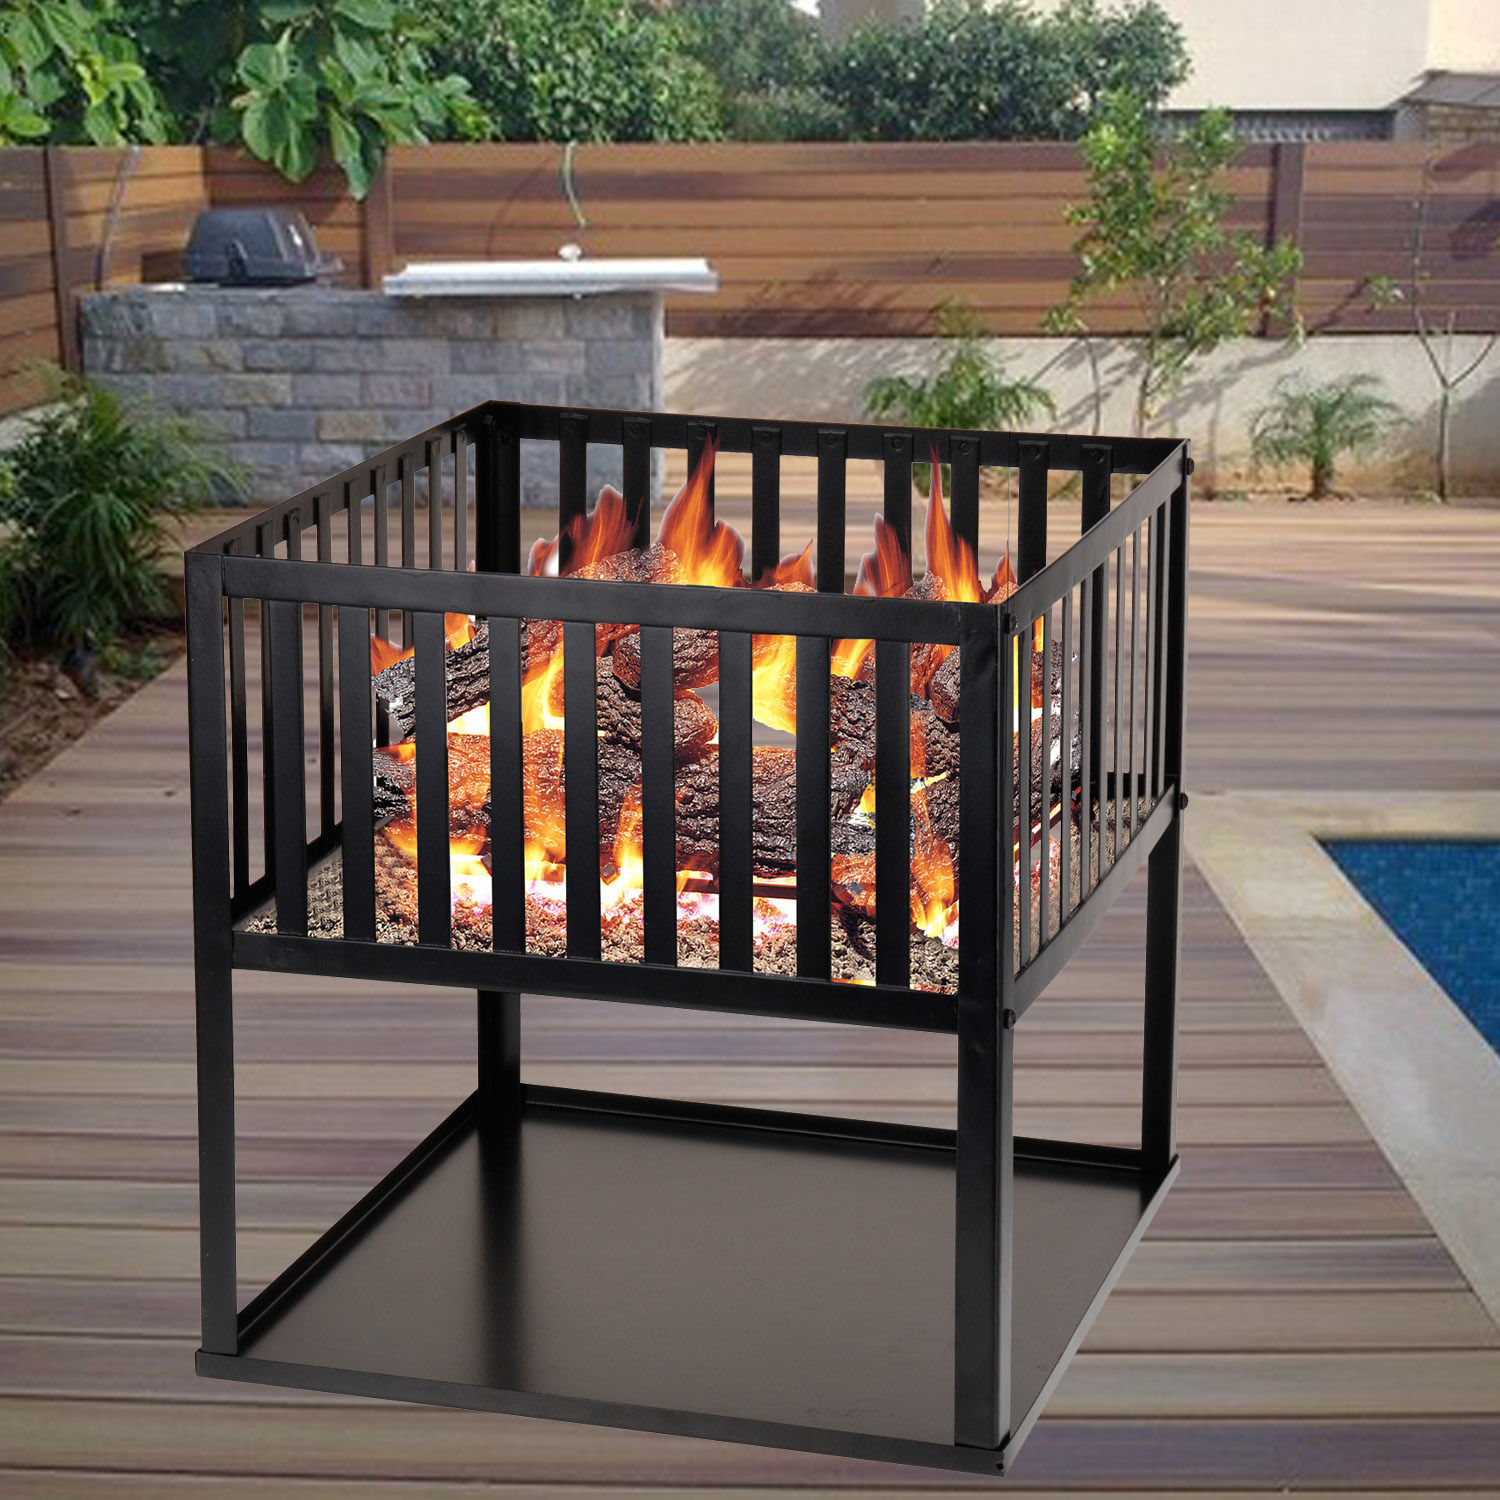 Garden Wood Log Burning Fire Basket Pit Outdoor Patio